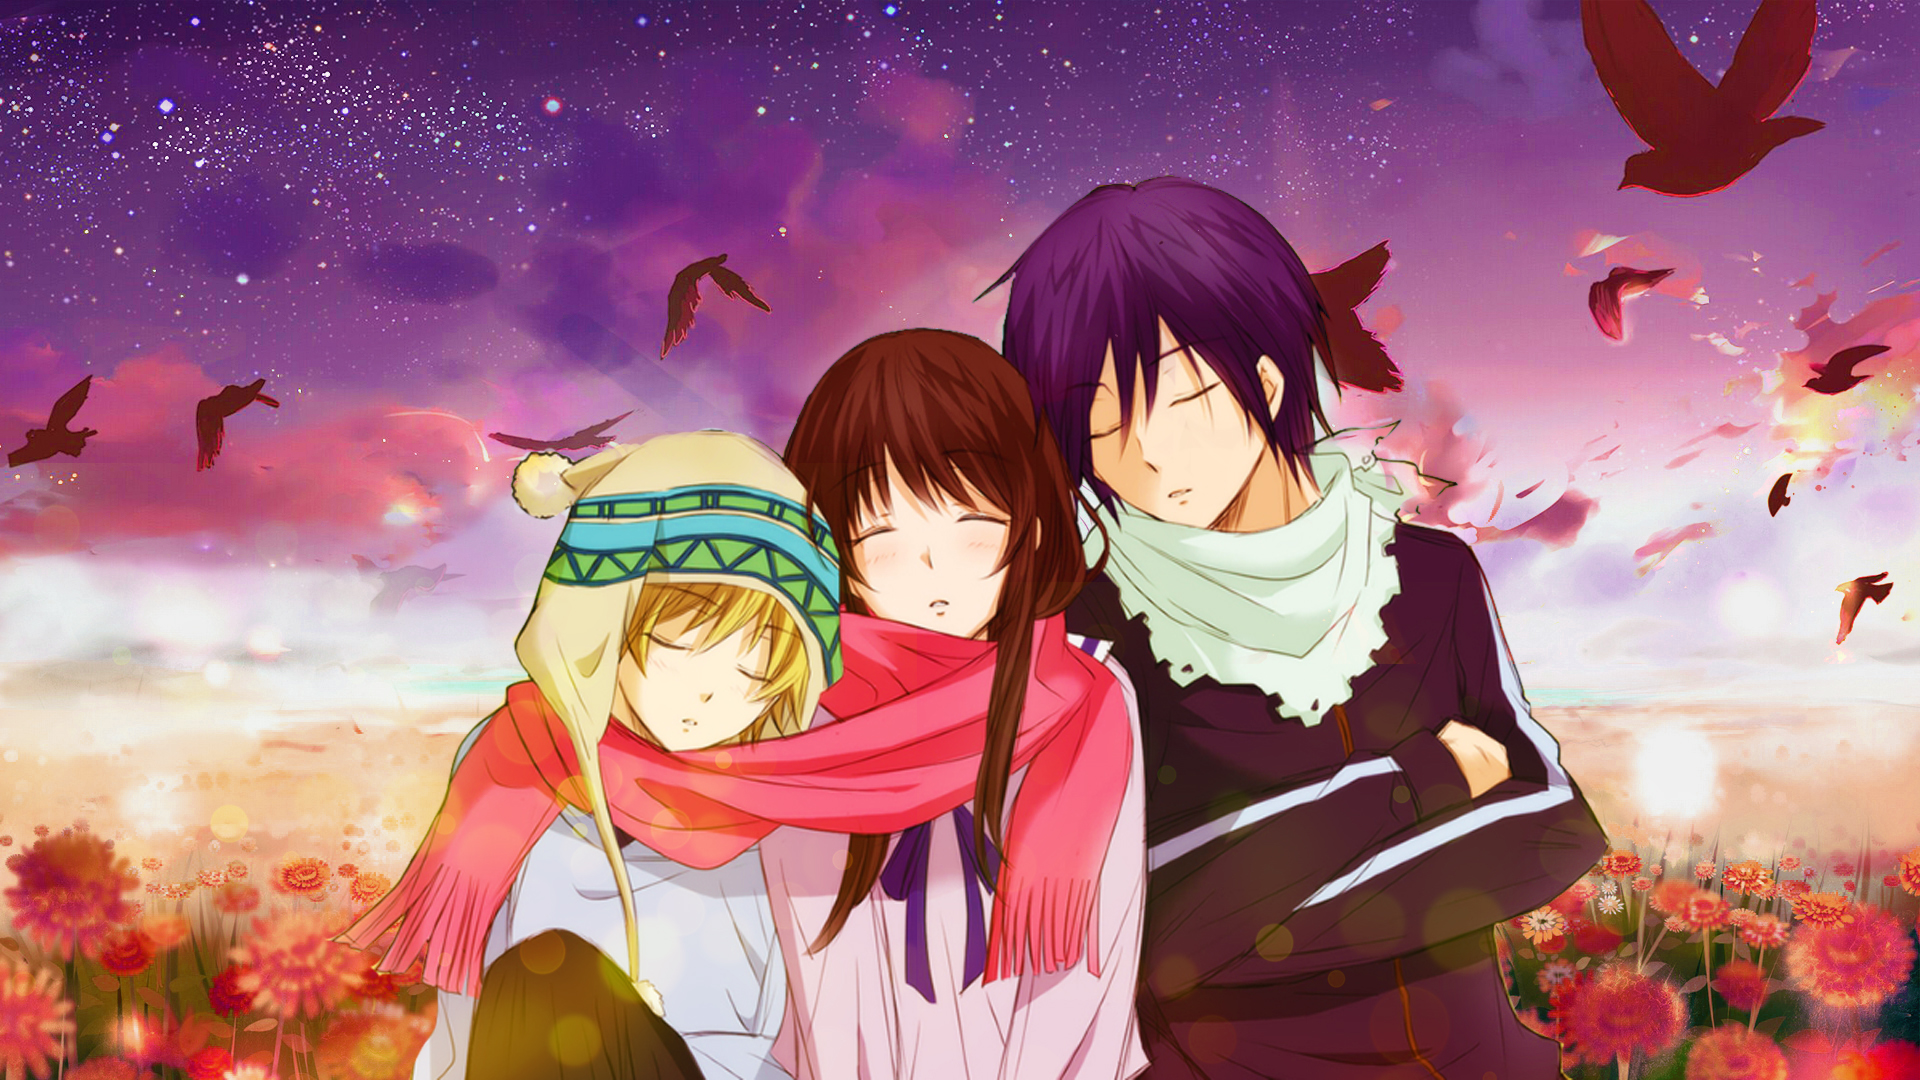 Noragami Wallpaper By Andyyoshikage On Deviantart